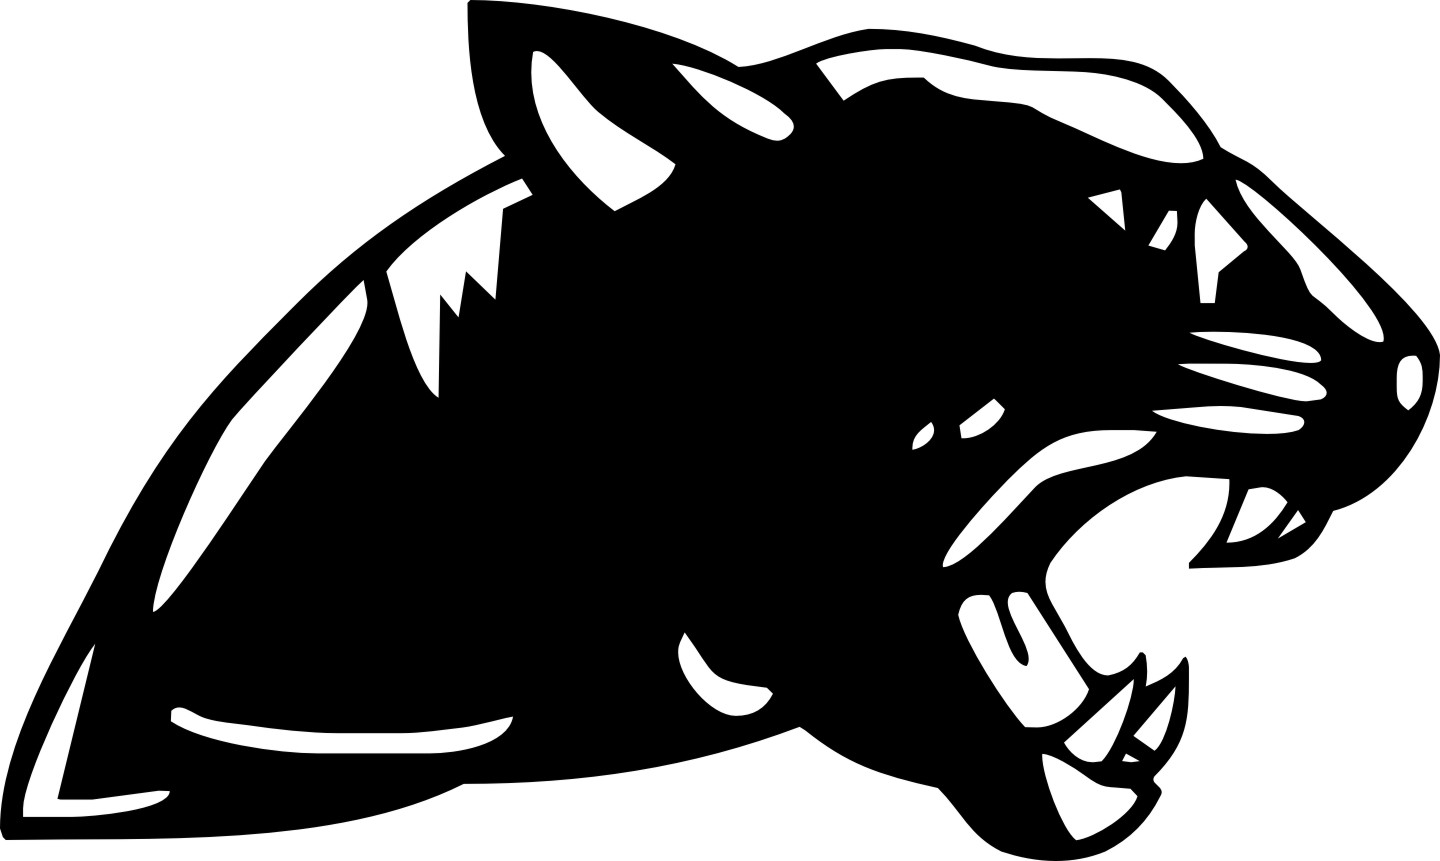 Panther mascot clipart black and white banner royalty free download Free Panther Clipart, Download Free Clip Art, Free Clip Art on ... banner royalty free download